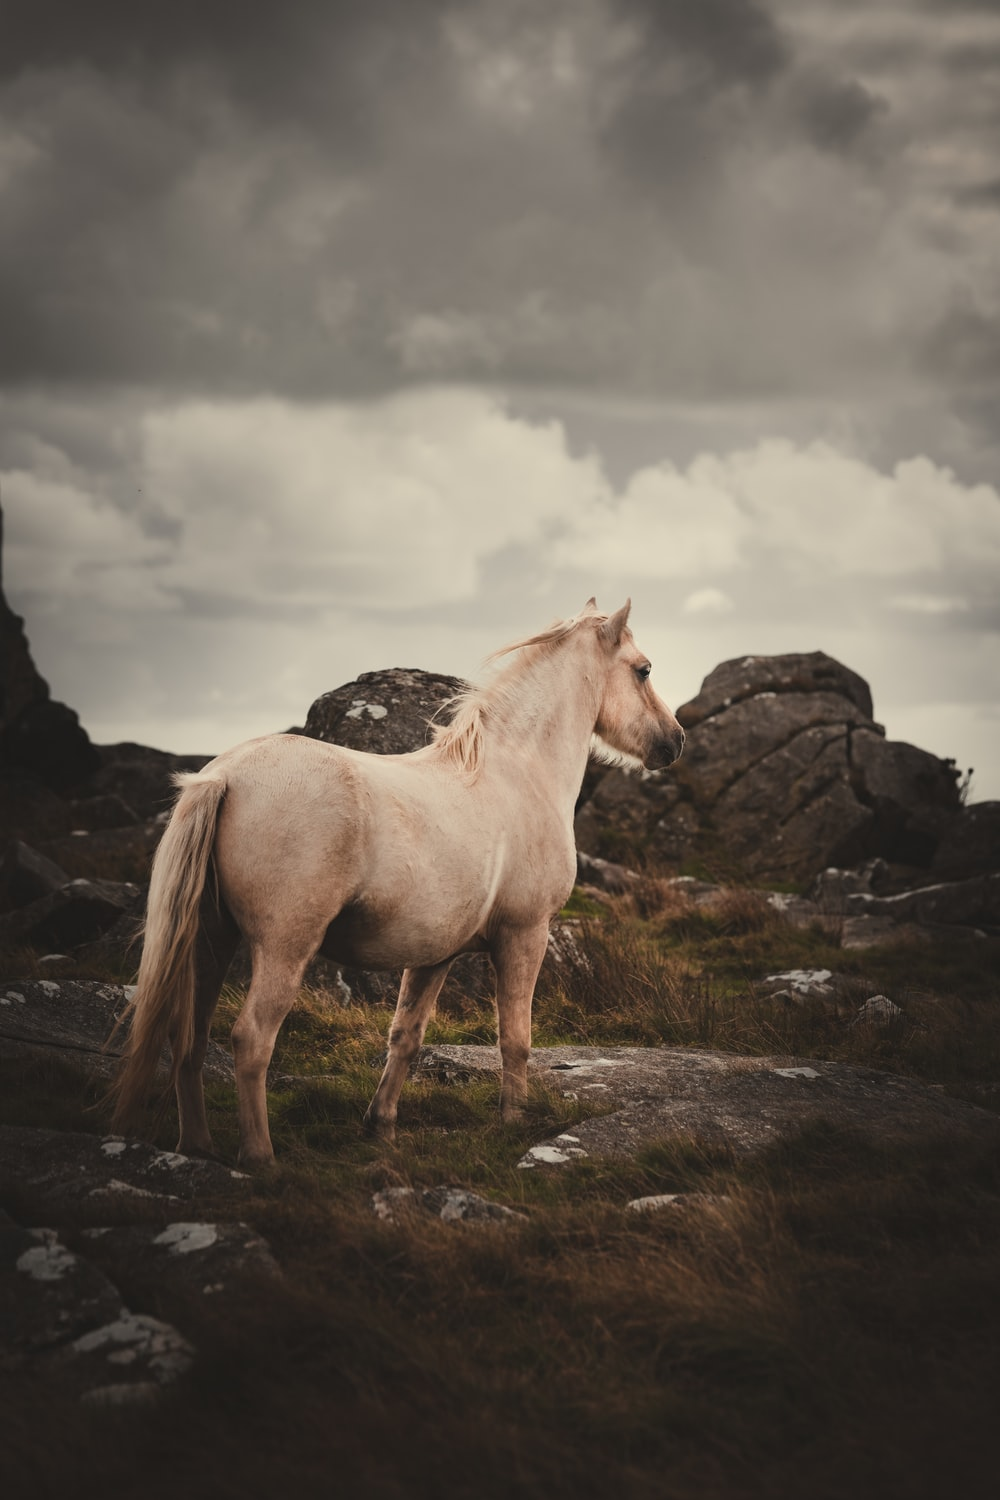 white horse on green grass field during daytime